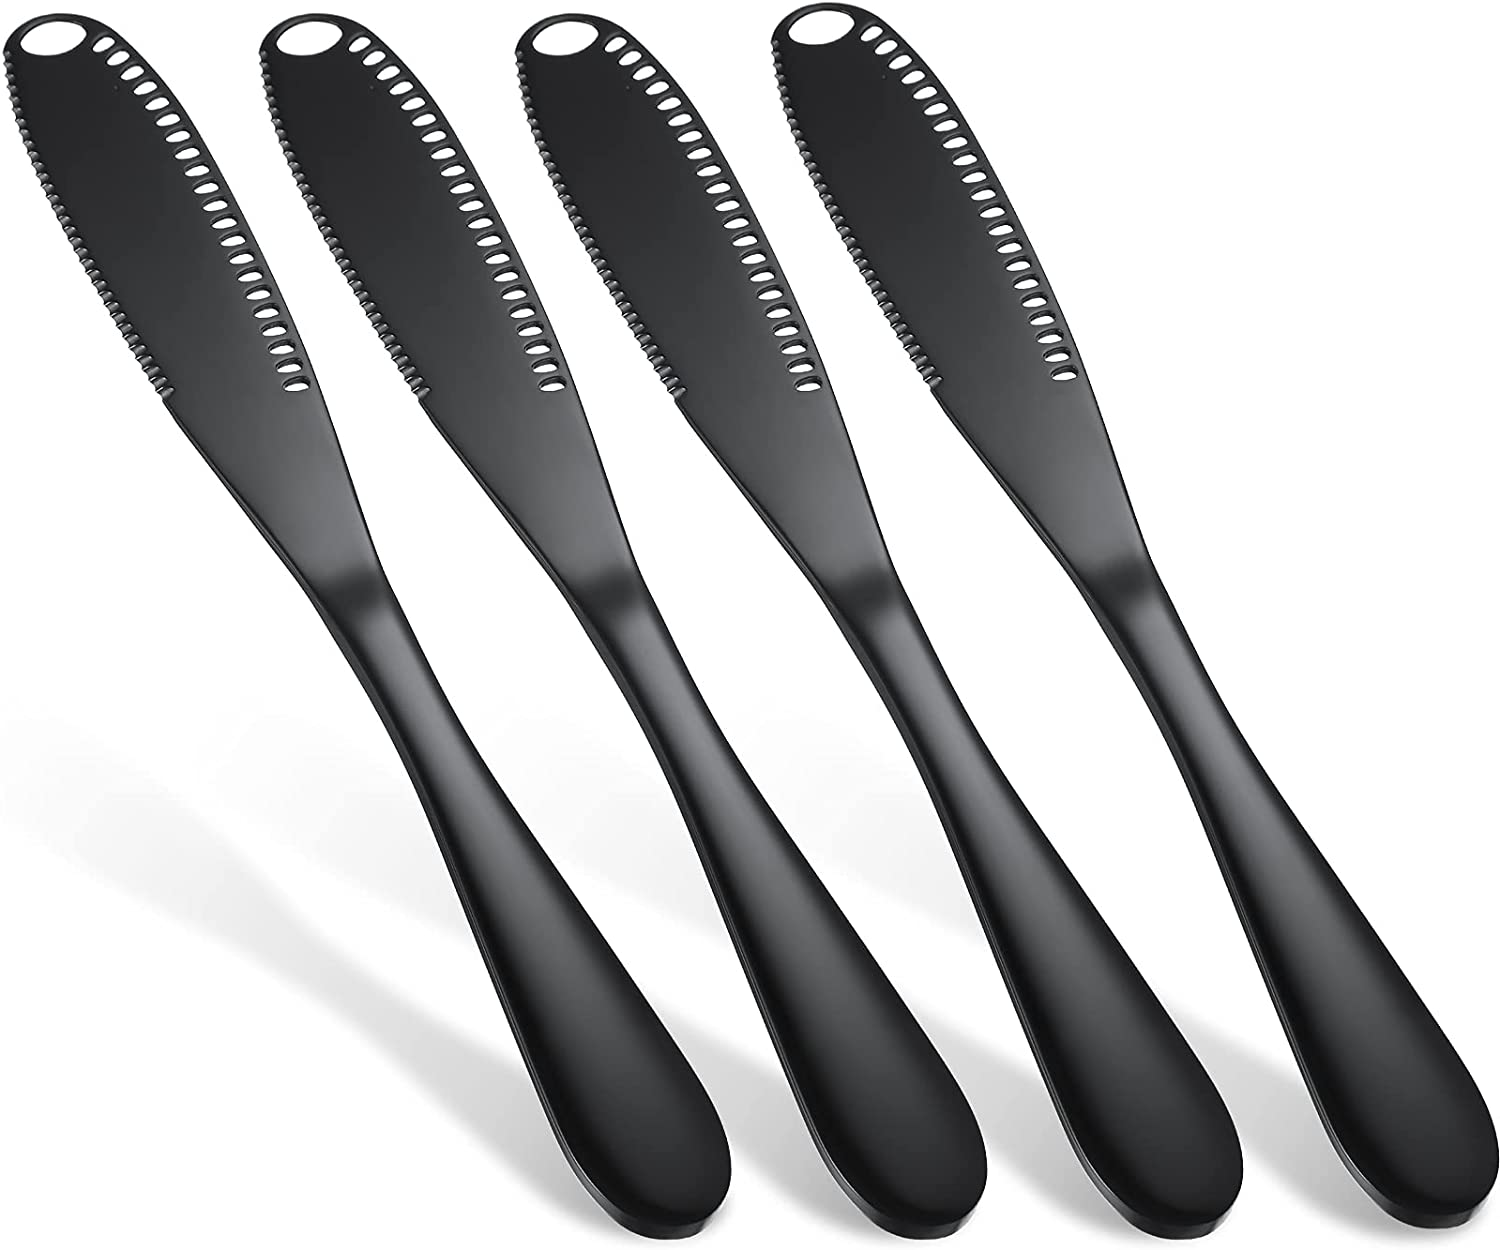 4 Pieces Butter service Spreader Max 60% OFF Knife Stainless wit Steel Grater